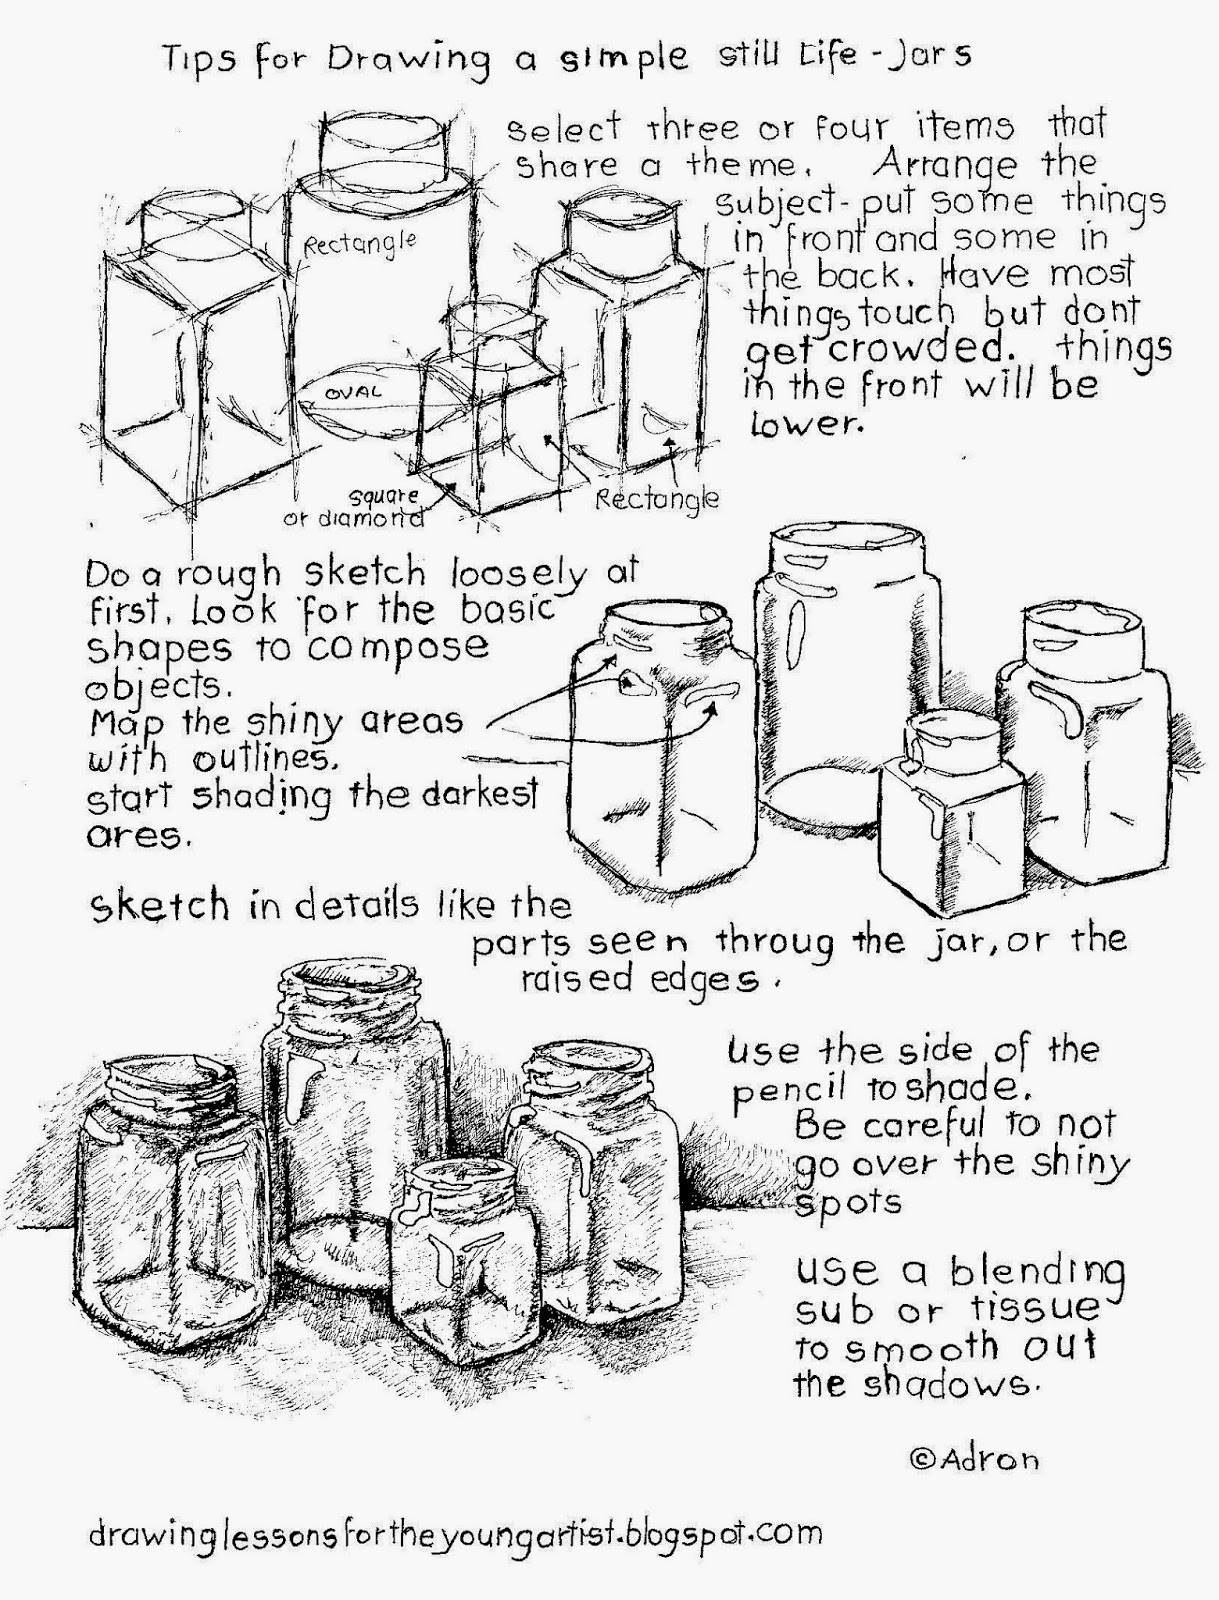 How to Draw Worksheets for The Young Artist: Tips for How